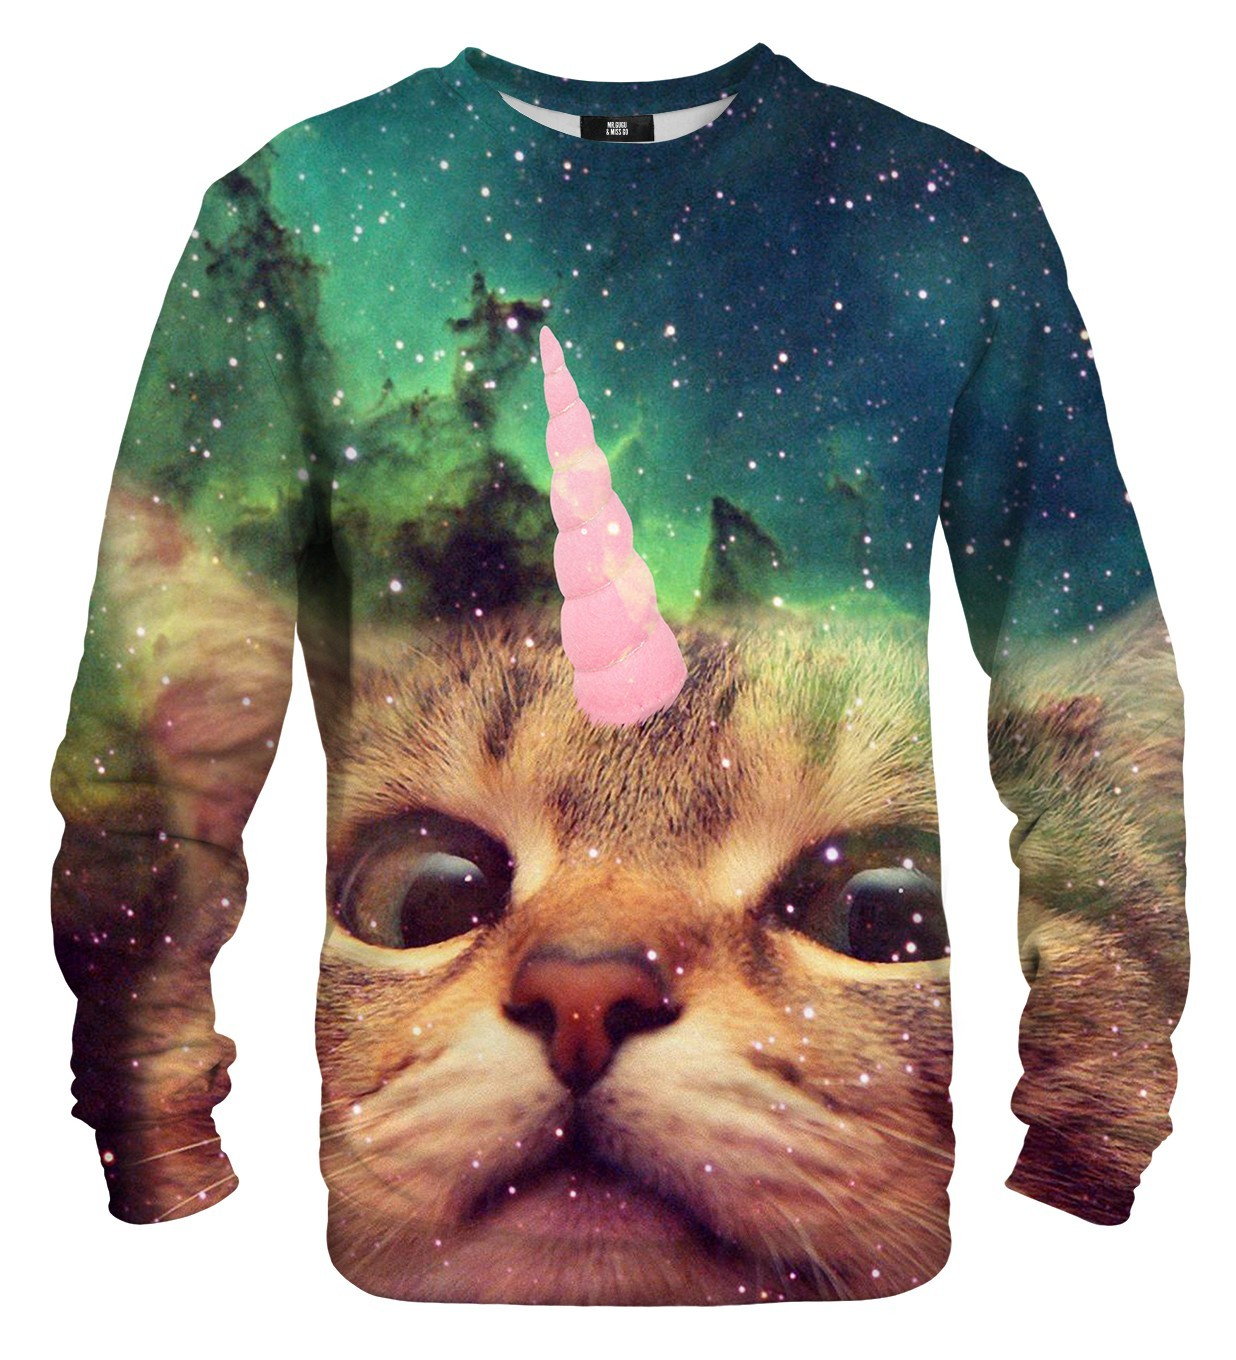 Unicat Printed Sweatshirt | Unisex | XS-2XL | Mr.Gugu & Miss Go